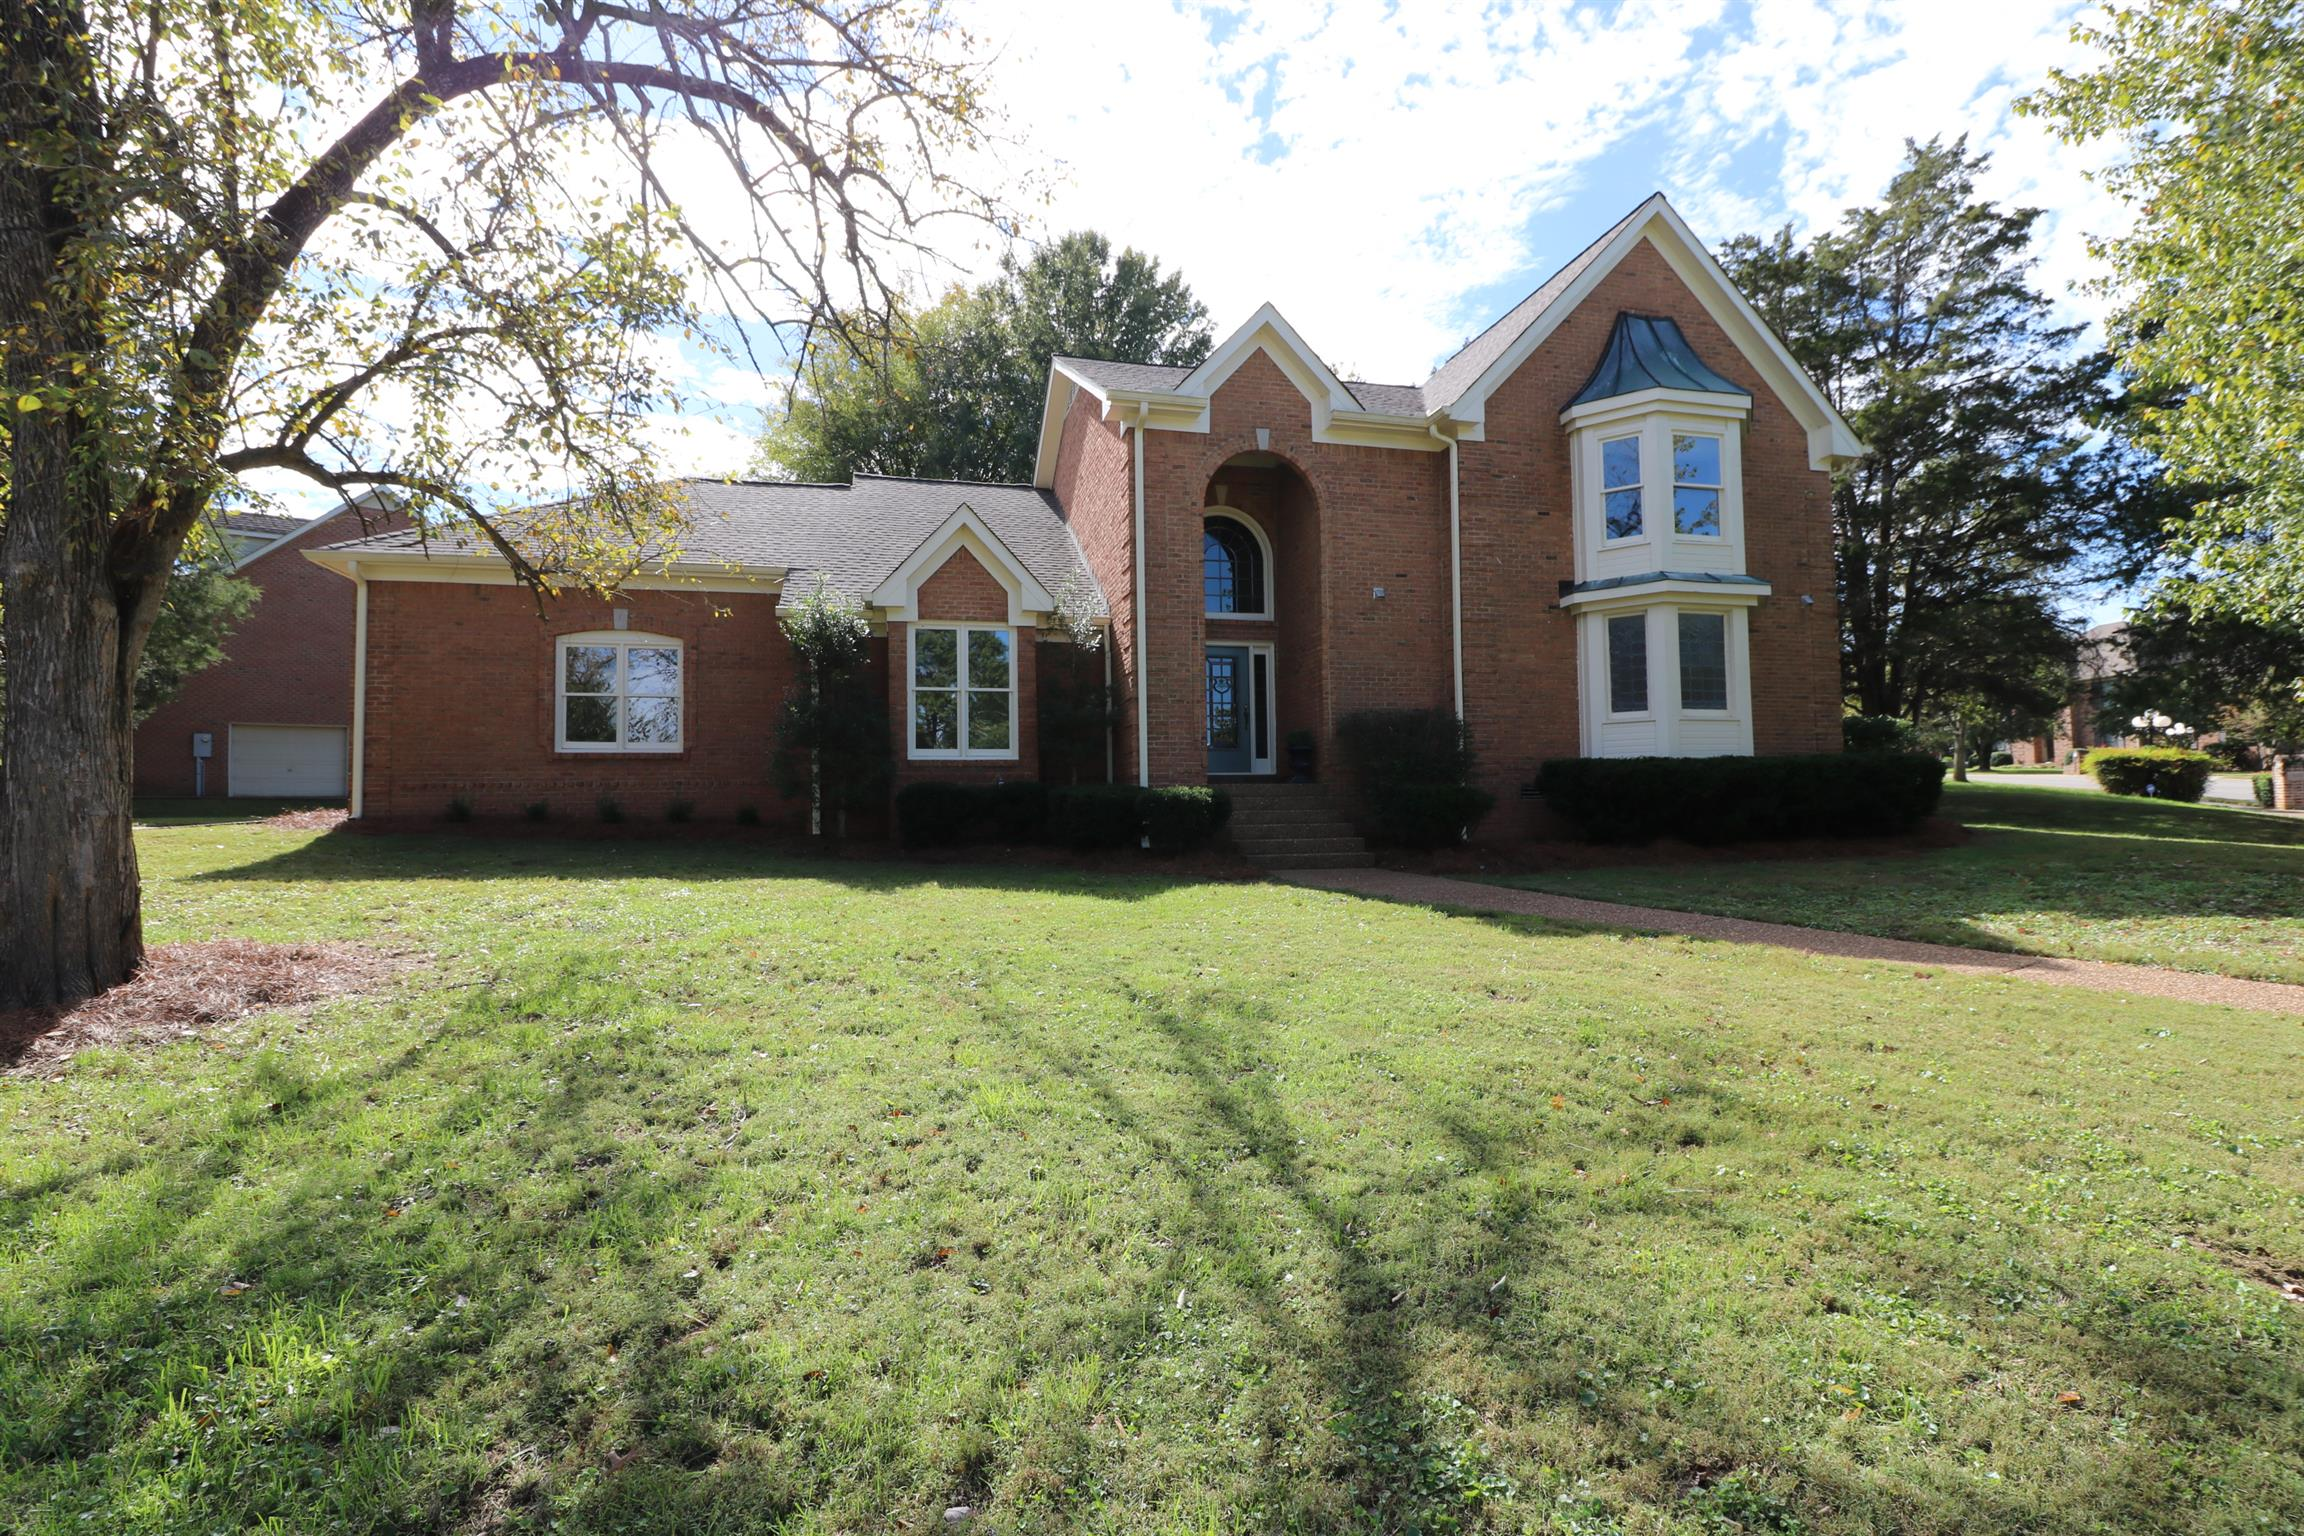 213 Ashawn Blvd, Old Hickory, TN 37138 - Old Hickory, TN real estate listing